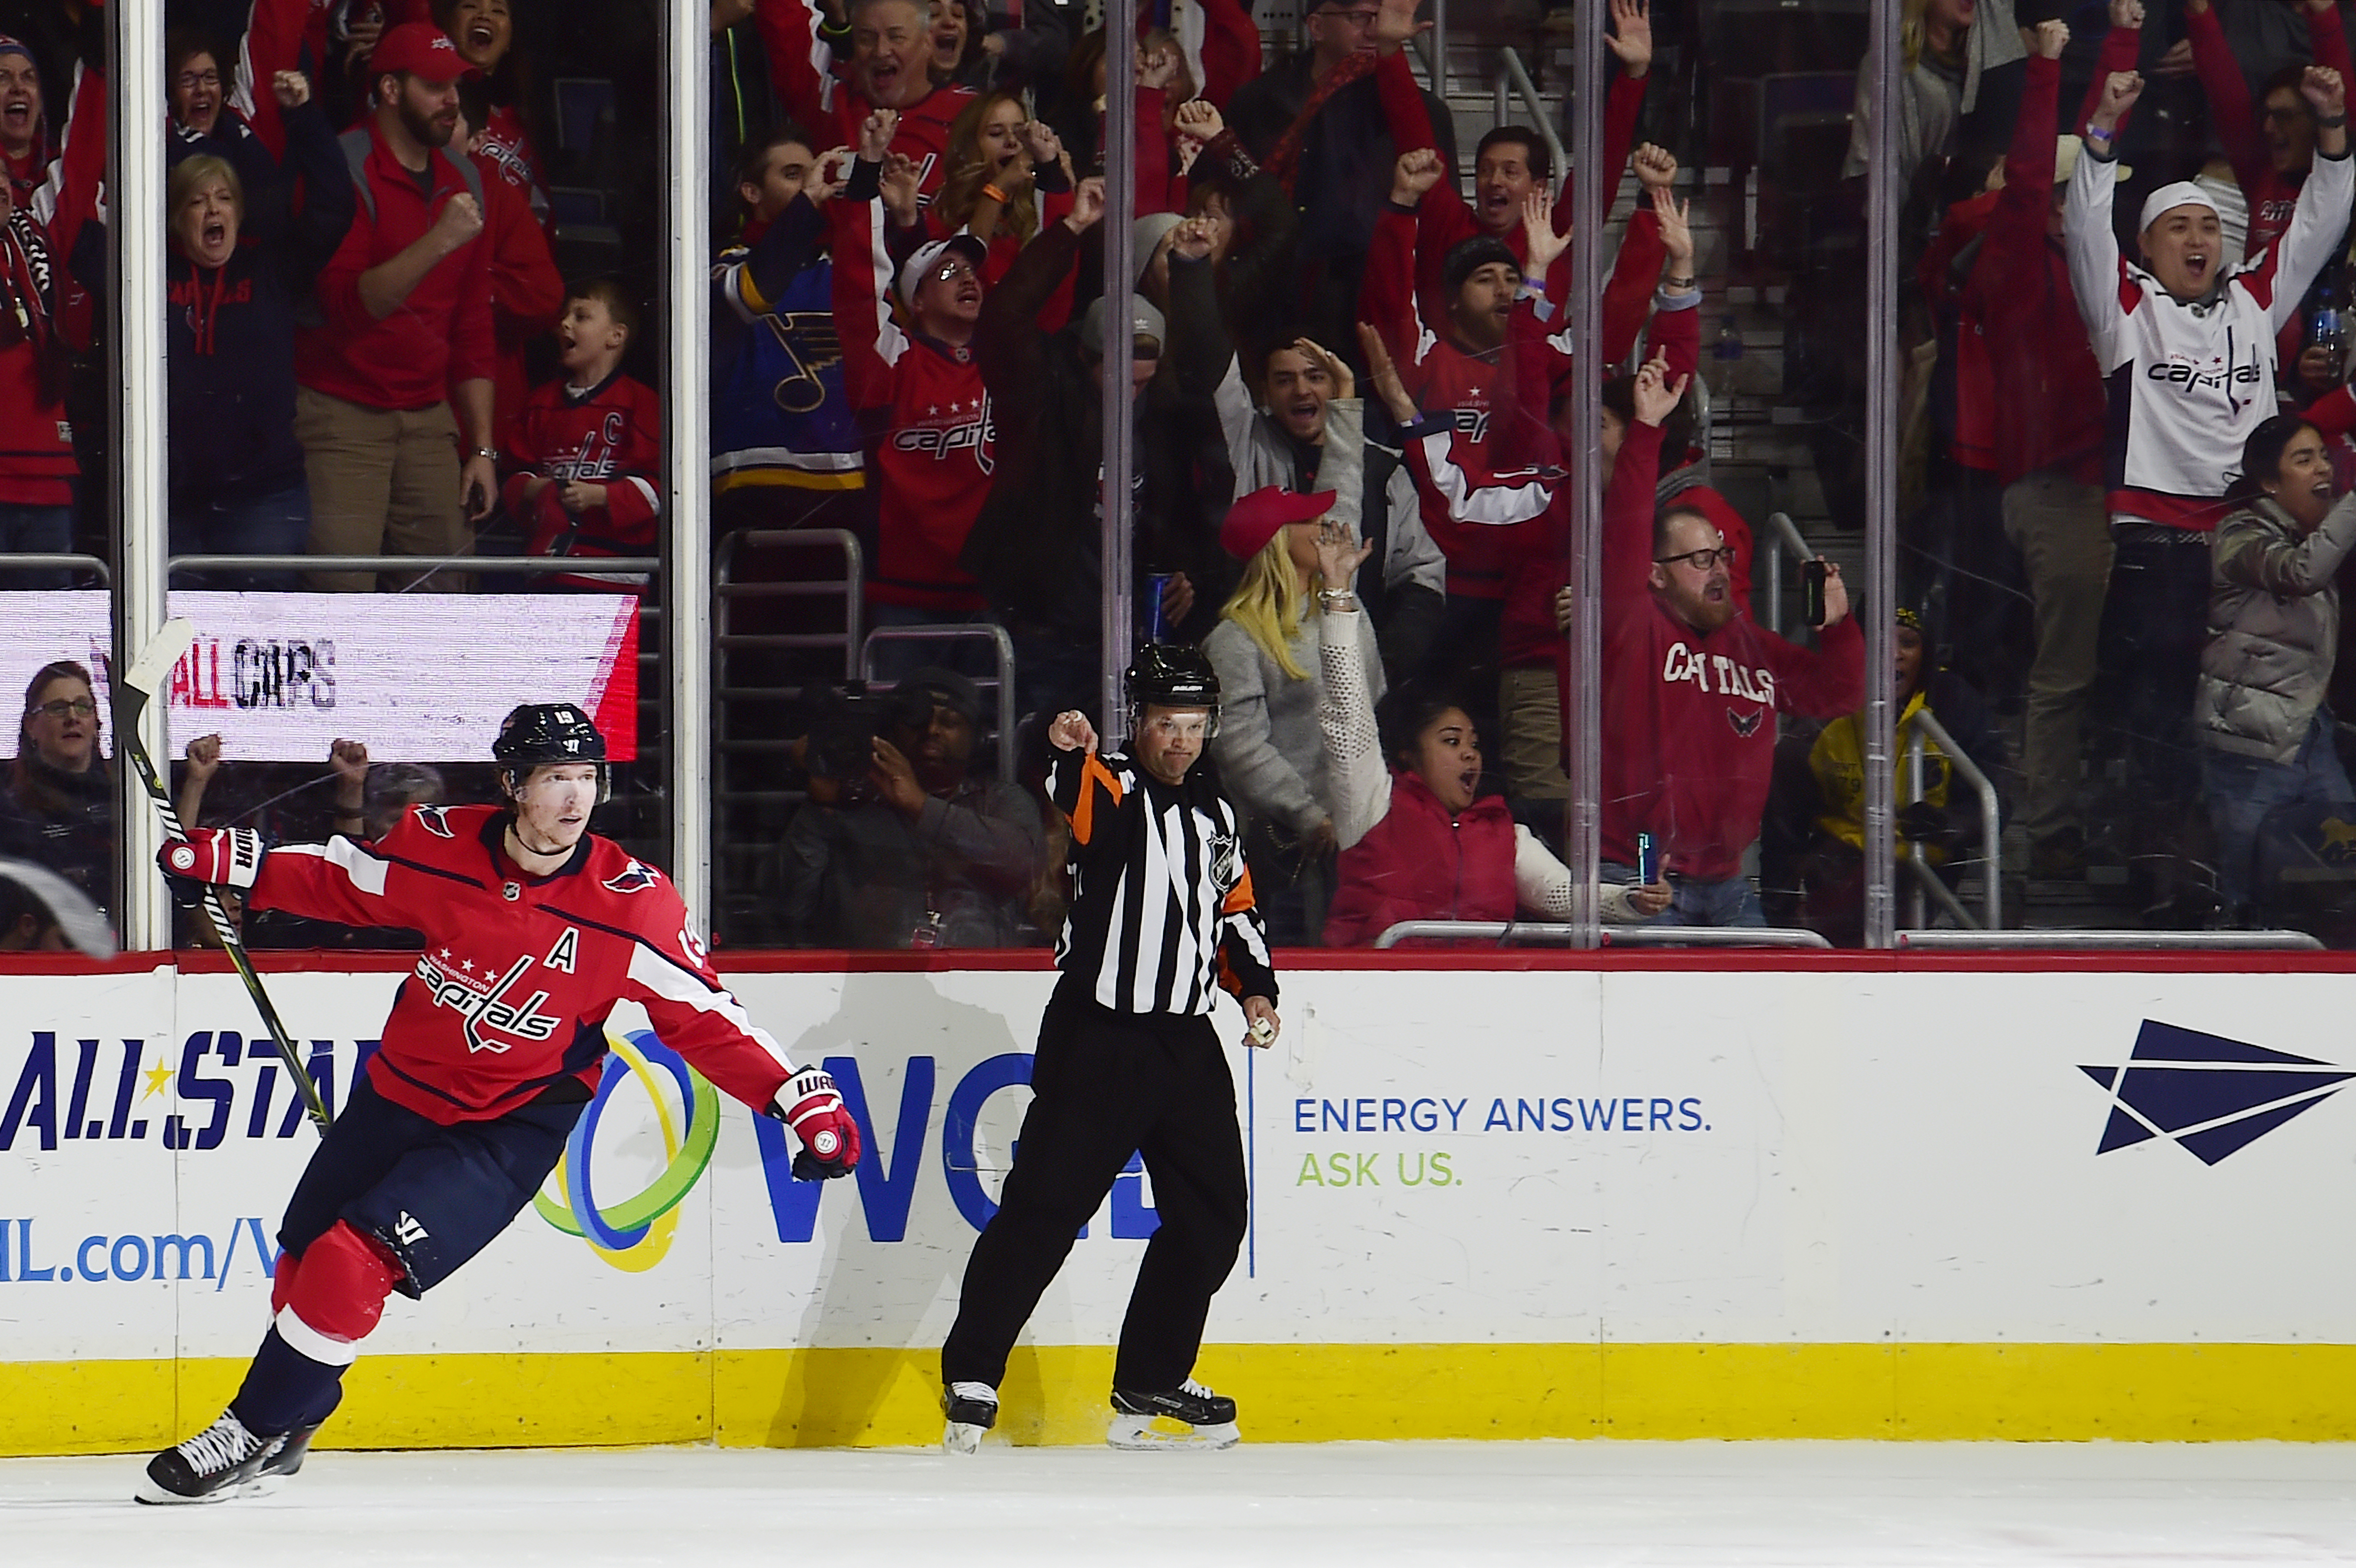 Nicklas Backstrom's game winner gives Capitals an overtime win over the Blues